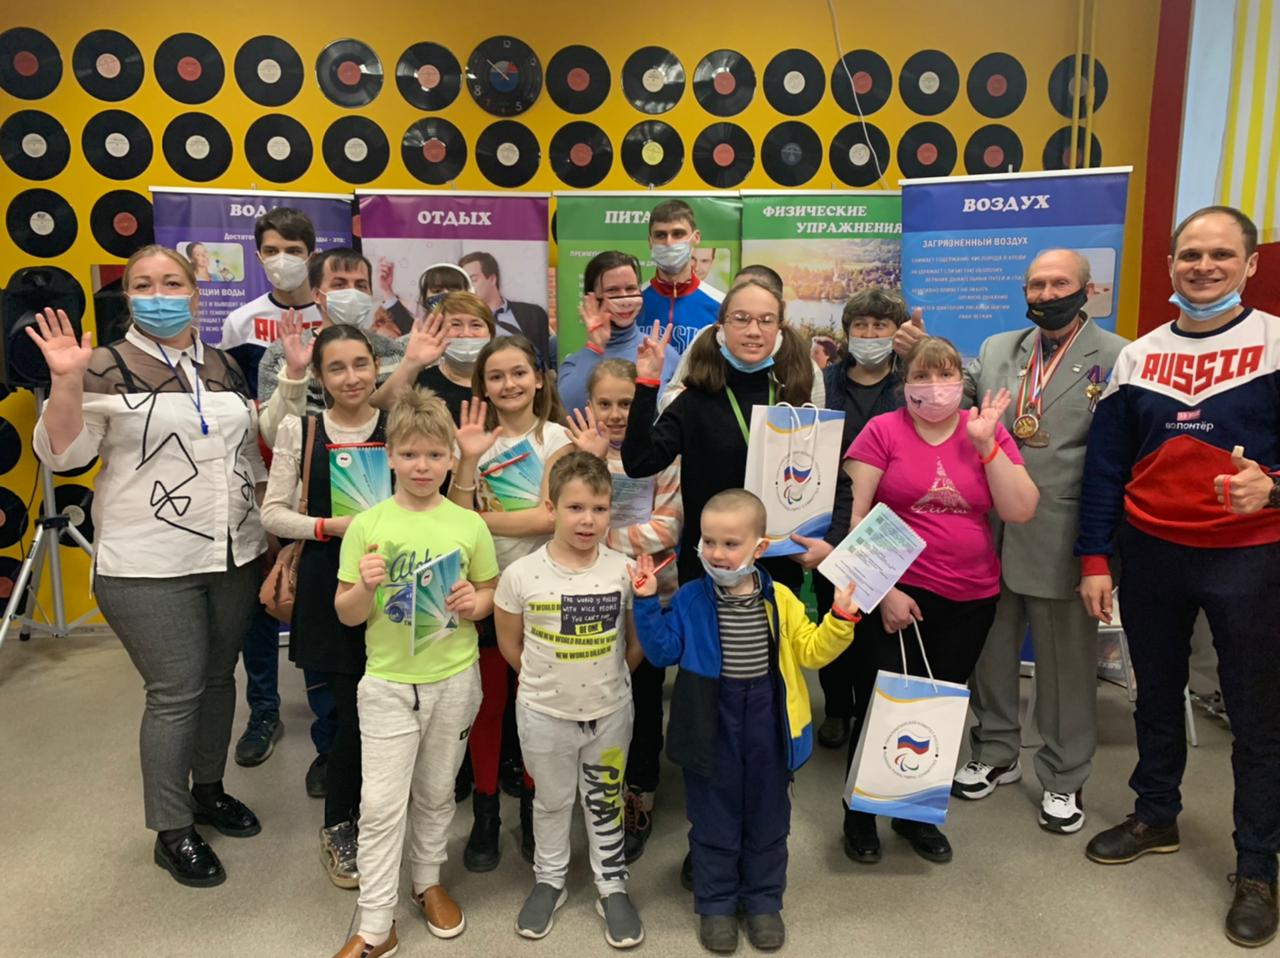 "MULTIPLE PRIZE WINNER OF WORLD TABLE TENNIS FOR FACES WITH PHYSICAL IMPAIRMENTS Y. NOZDRUNOV TOOK PART IN THE MEETING ""AN INPRESSIBLE GIFT OF HEALTH"" WITH CHILDREN WITH HEALTH LIMITATIONS, ASSOCIATED WITH THE INTERNATIONAL DAY OF HEALTH"